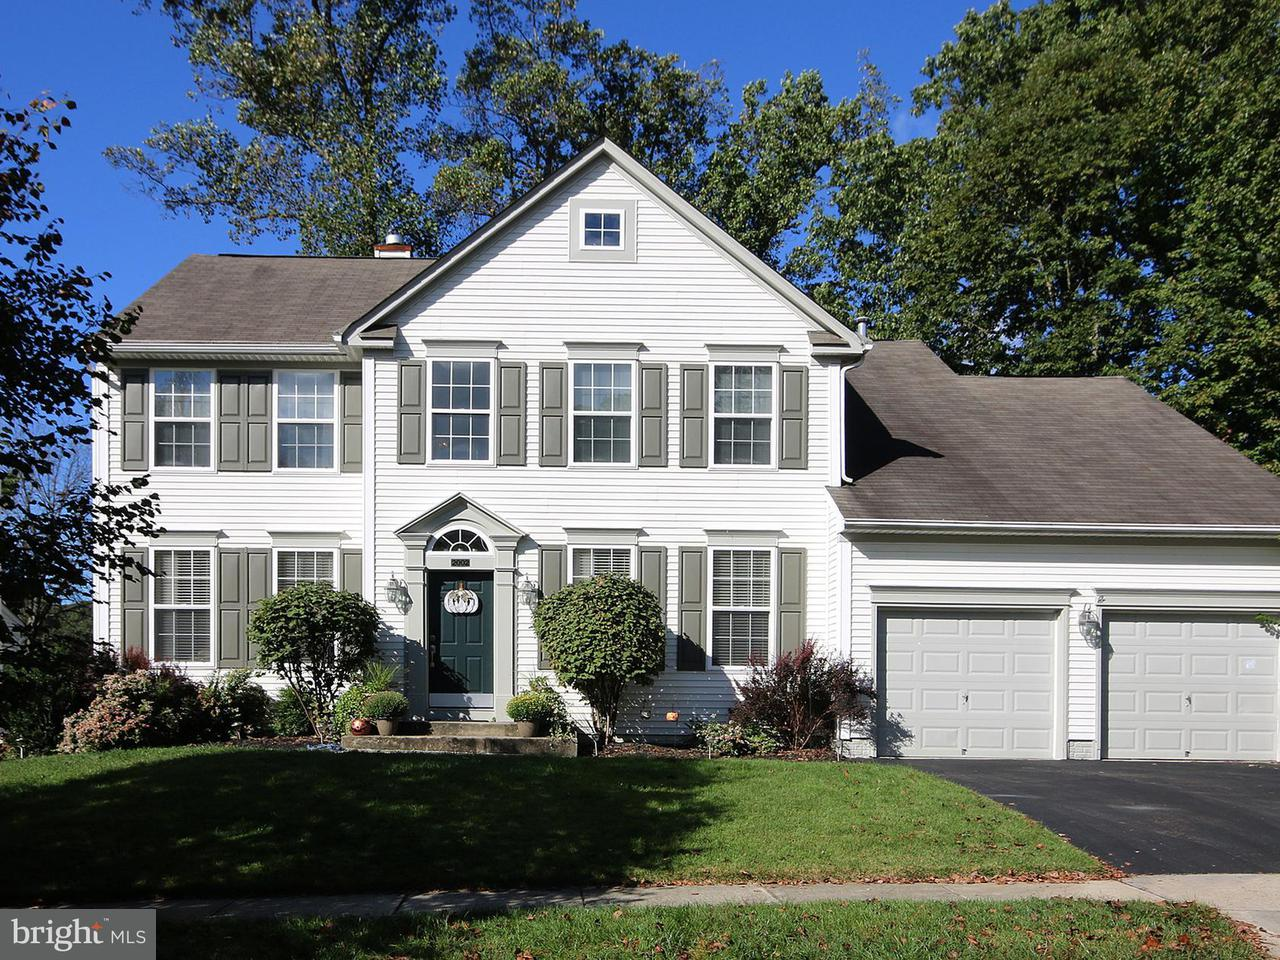 Single Family Home for Sale at 2002 WILLOW GLEN Court 2002 WILLOW GLEN Court Crofton, Maryland 21114 United States